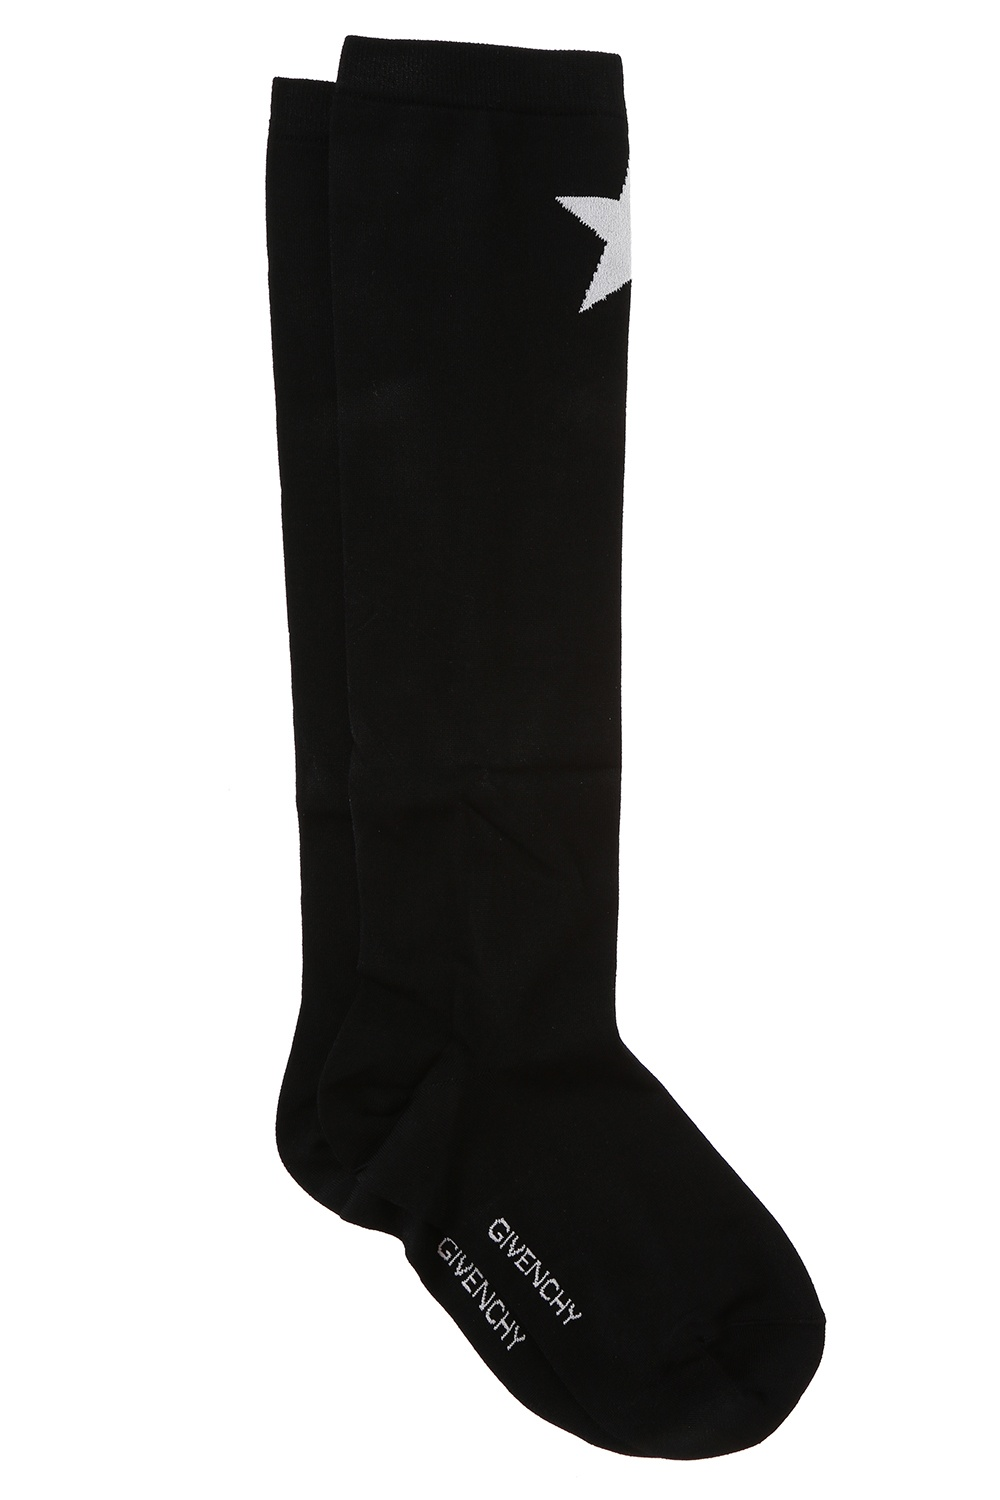 Givenchy Embroidered star long socks